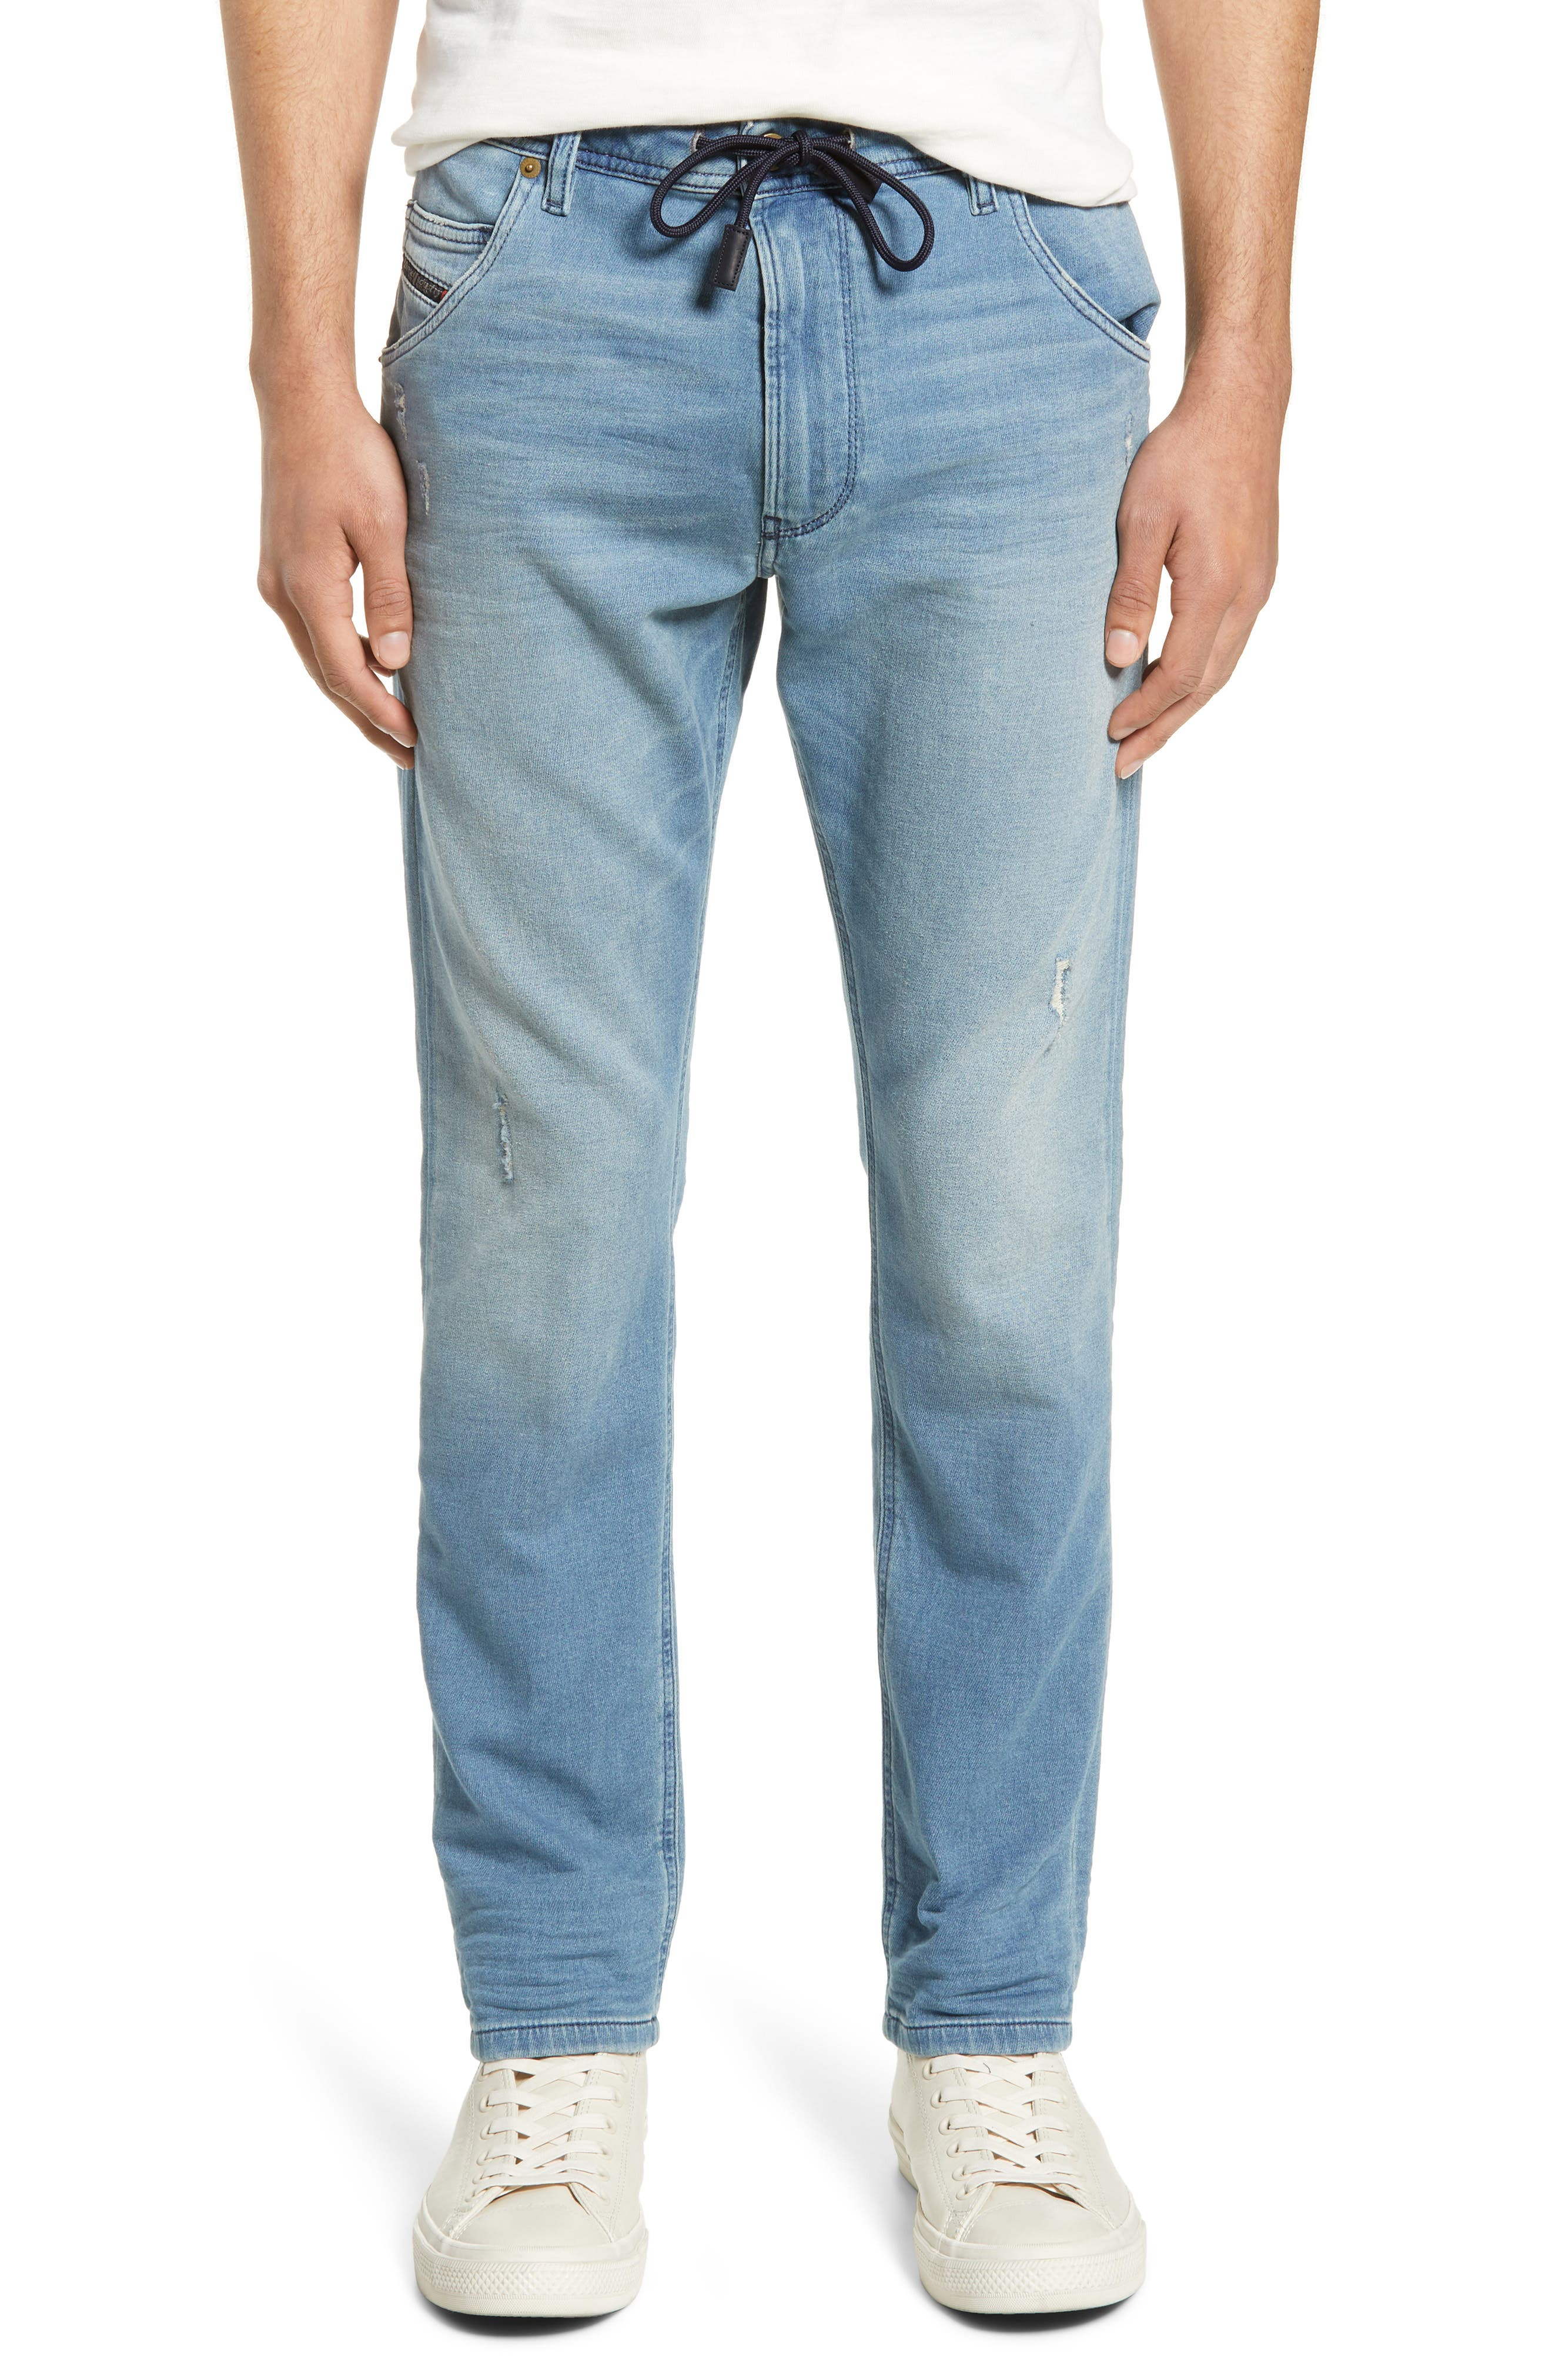 Krooley Jogg Slouchy Skinny Fit Jeans, Main, color, 086AY